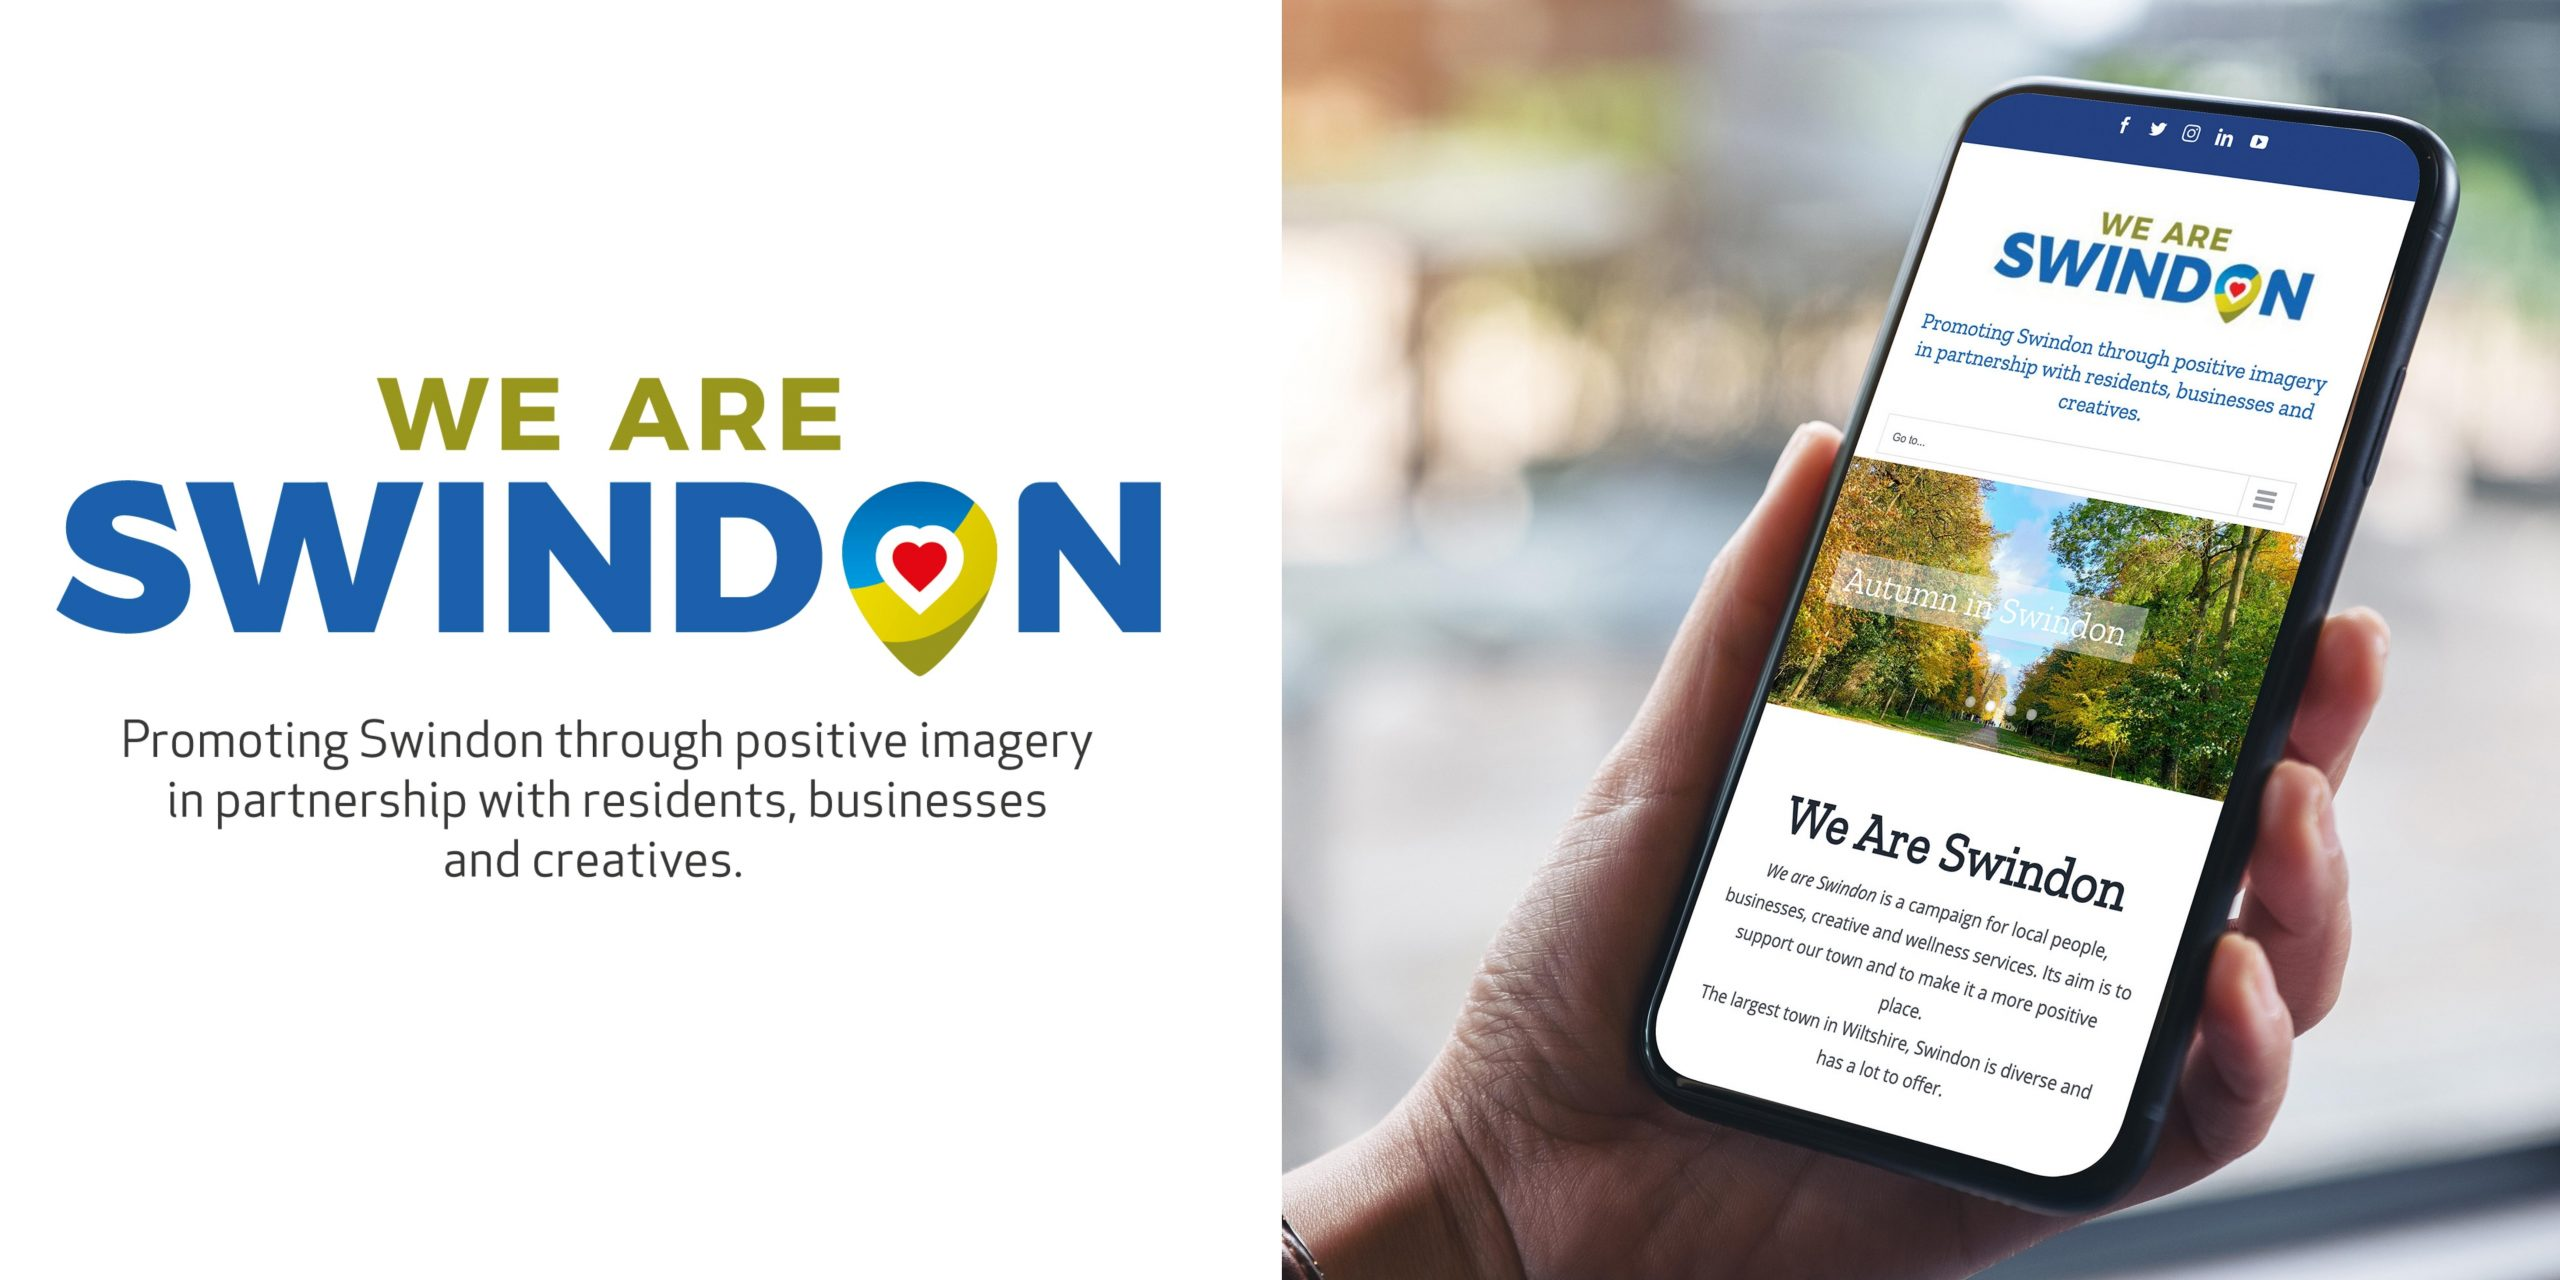 Advertise your business with We Are Swindon